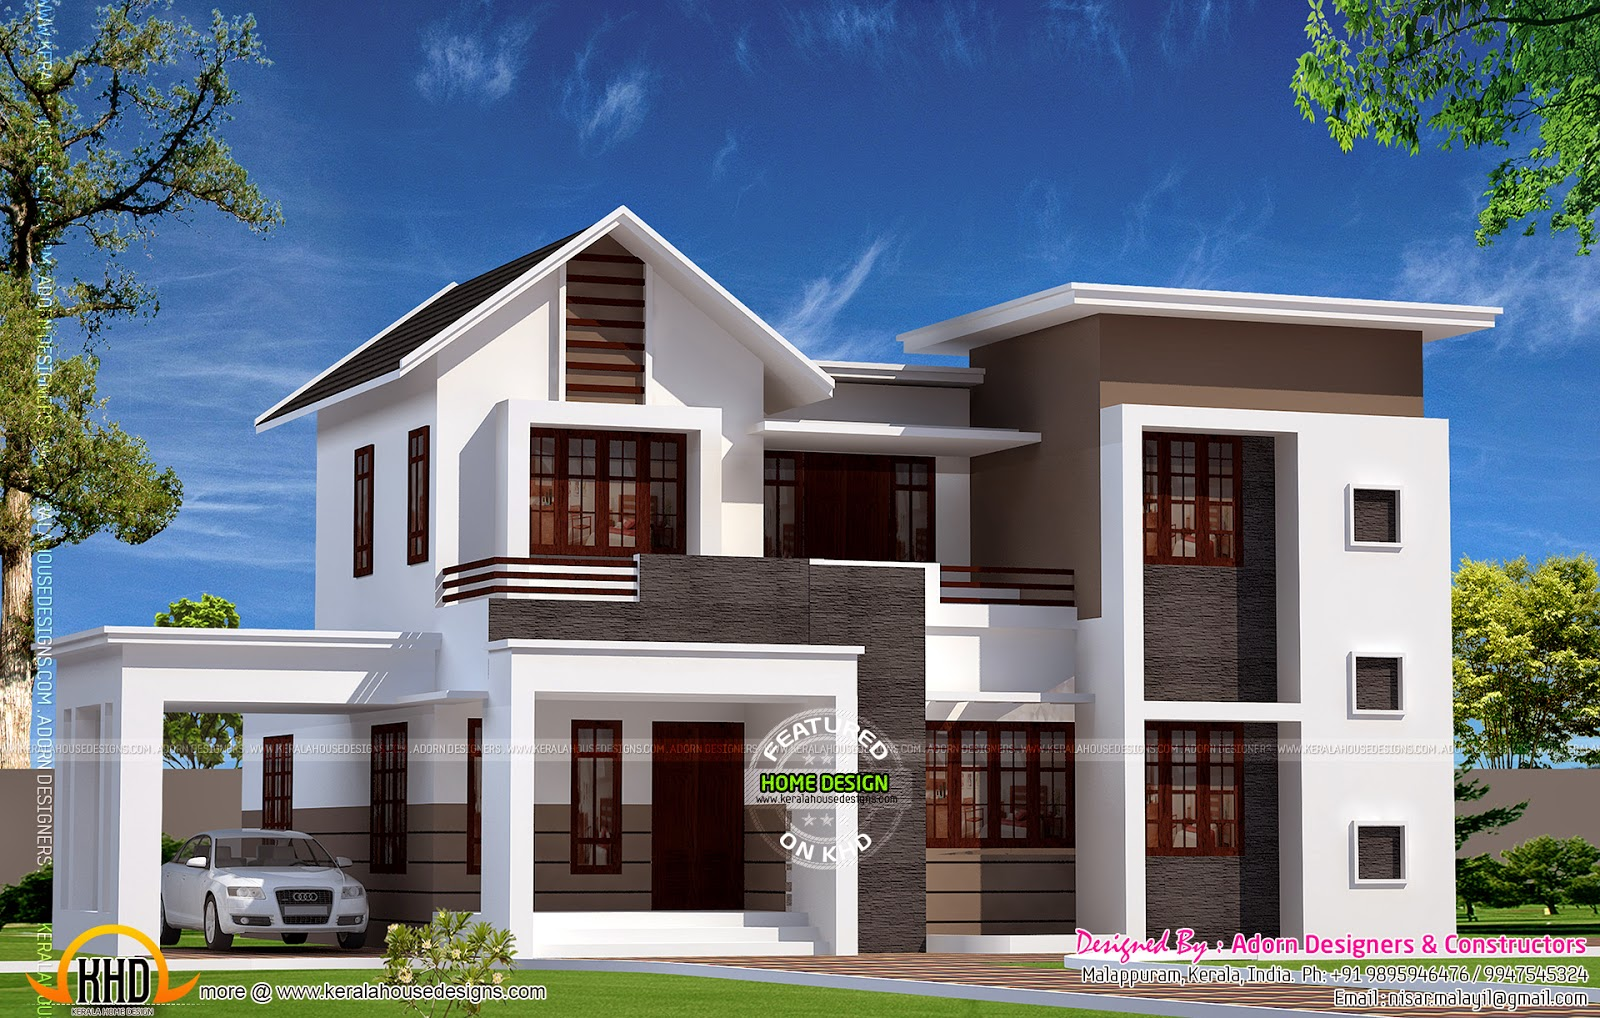 New house design in 1900 sq feet kerala home design and floor plans New house design